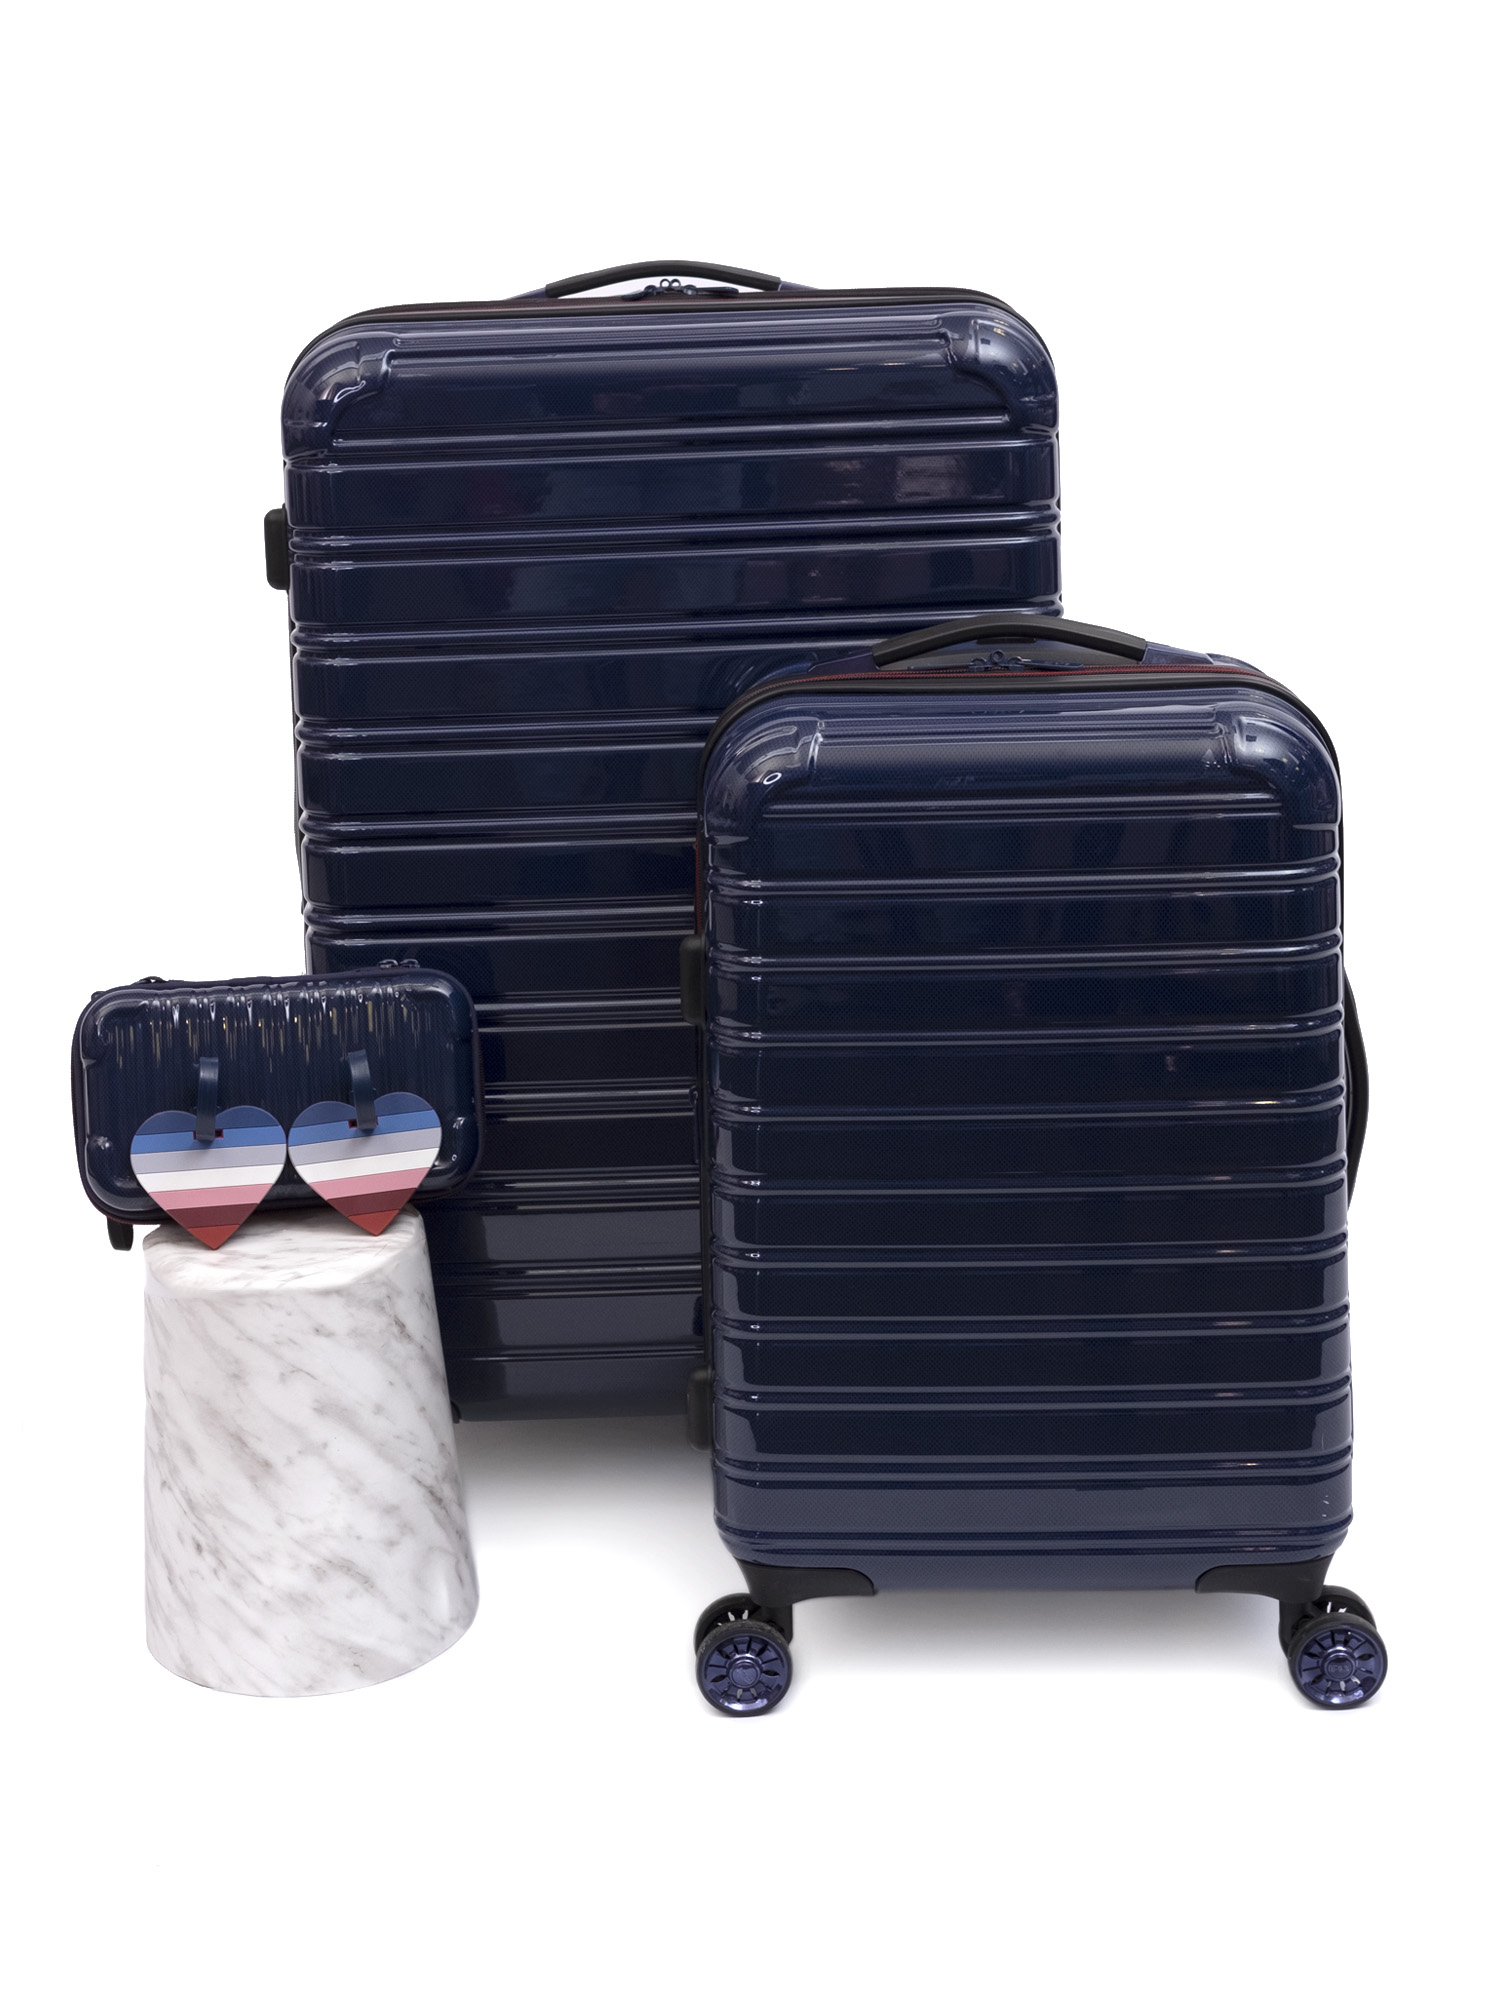 EV1 from Ellen DeGeneres 3 Piece Hardside Fibertech Luggage Set